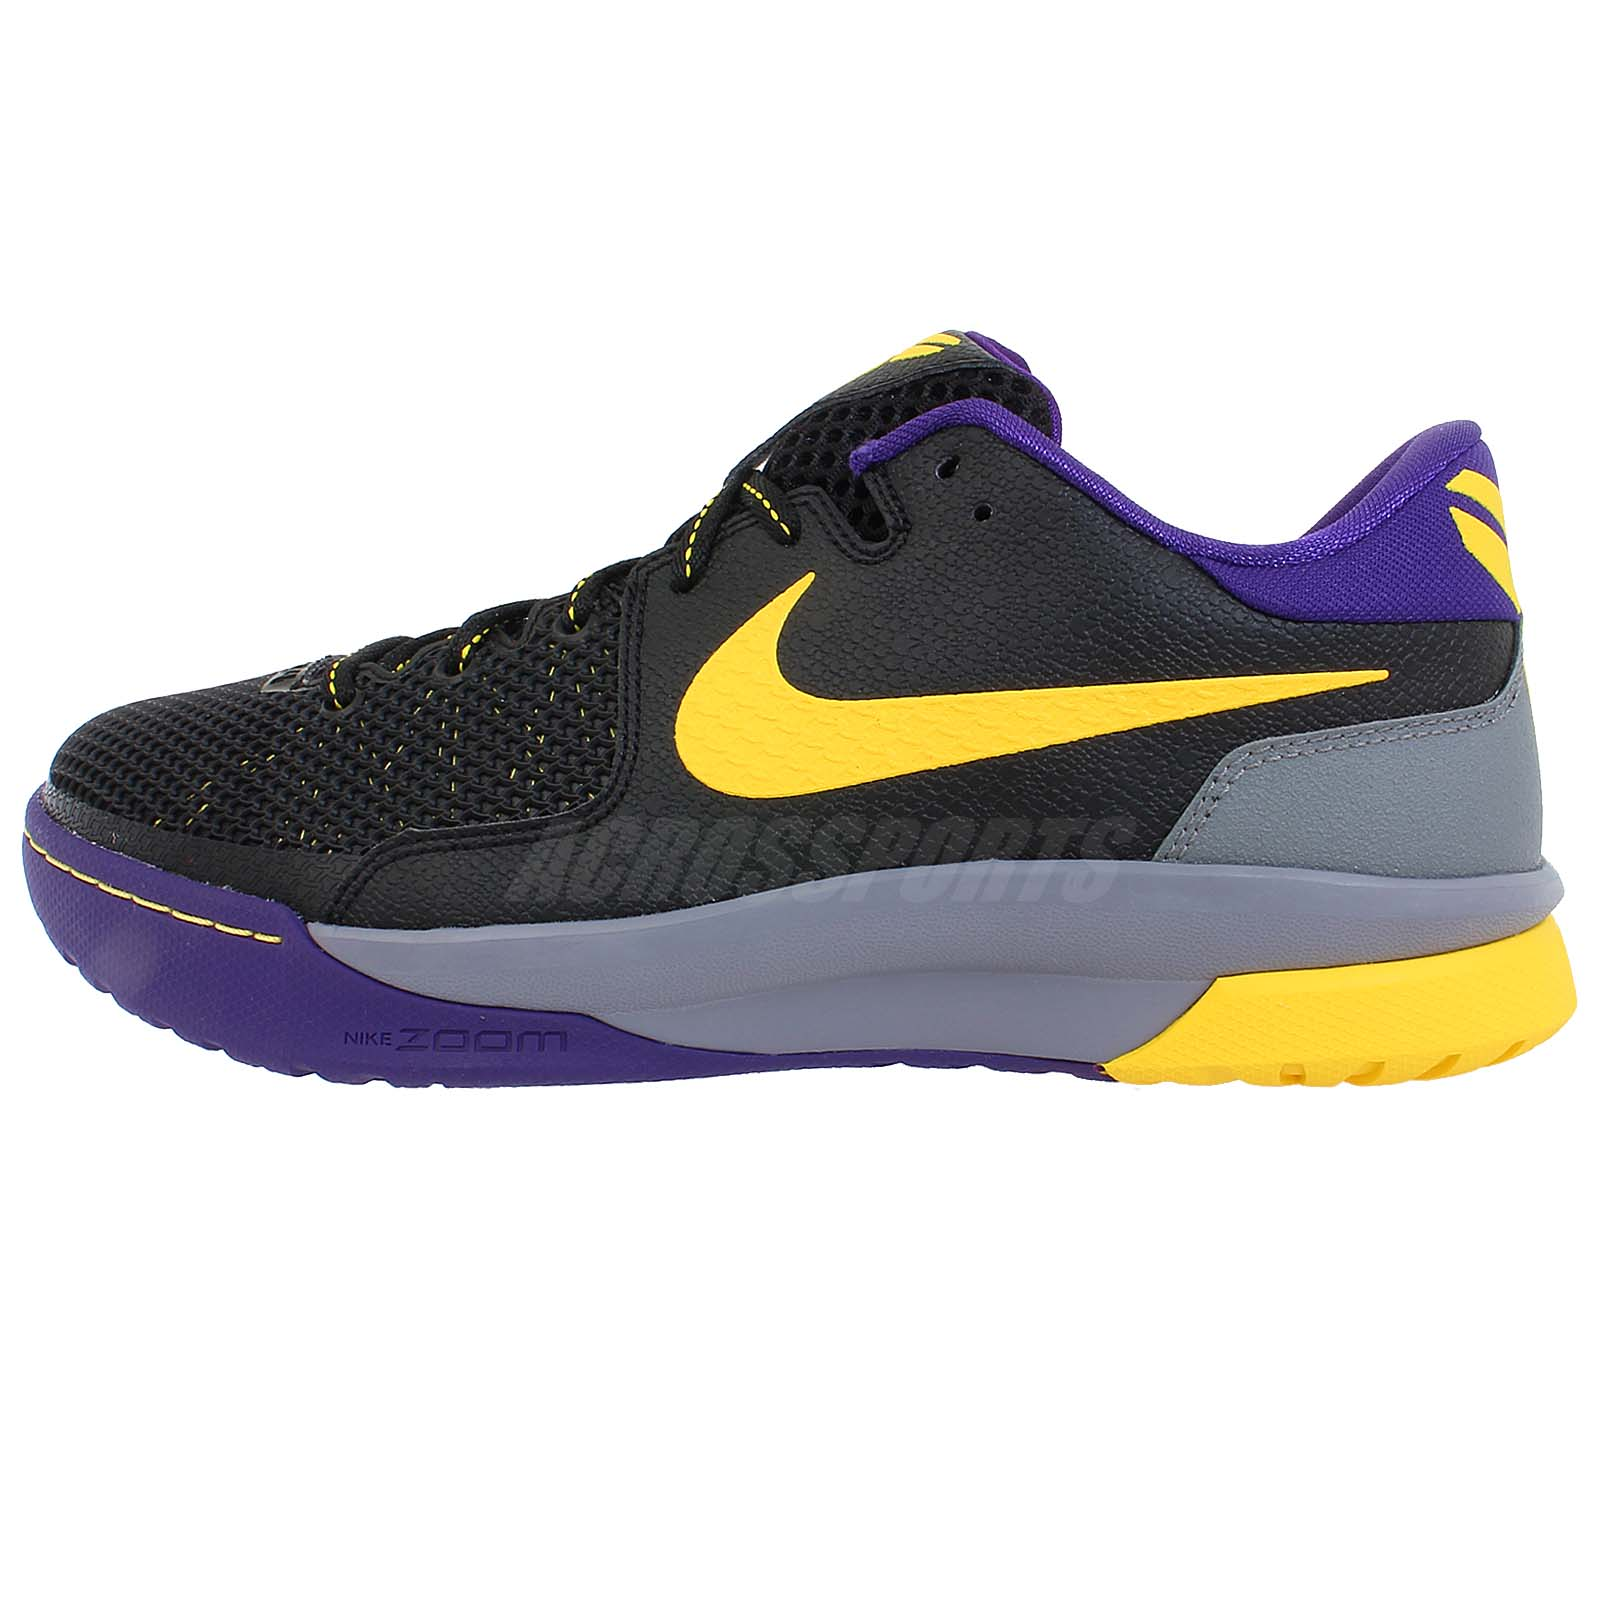 We have the best quality Nike Dunk shoes for sale with box new Dunk shoes for sale,will certainly attract your rusticzcountrysstylexhomedecor.tk are many Cheap Nike Dunk SB For Sale on the website,you can get many kinds of Nike shoes.